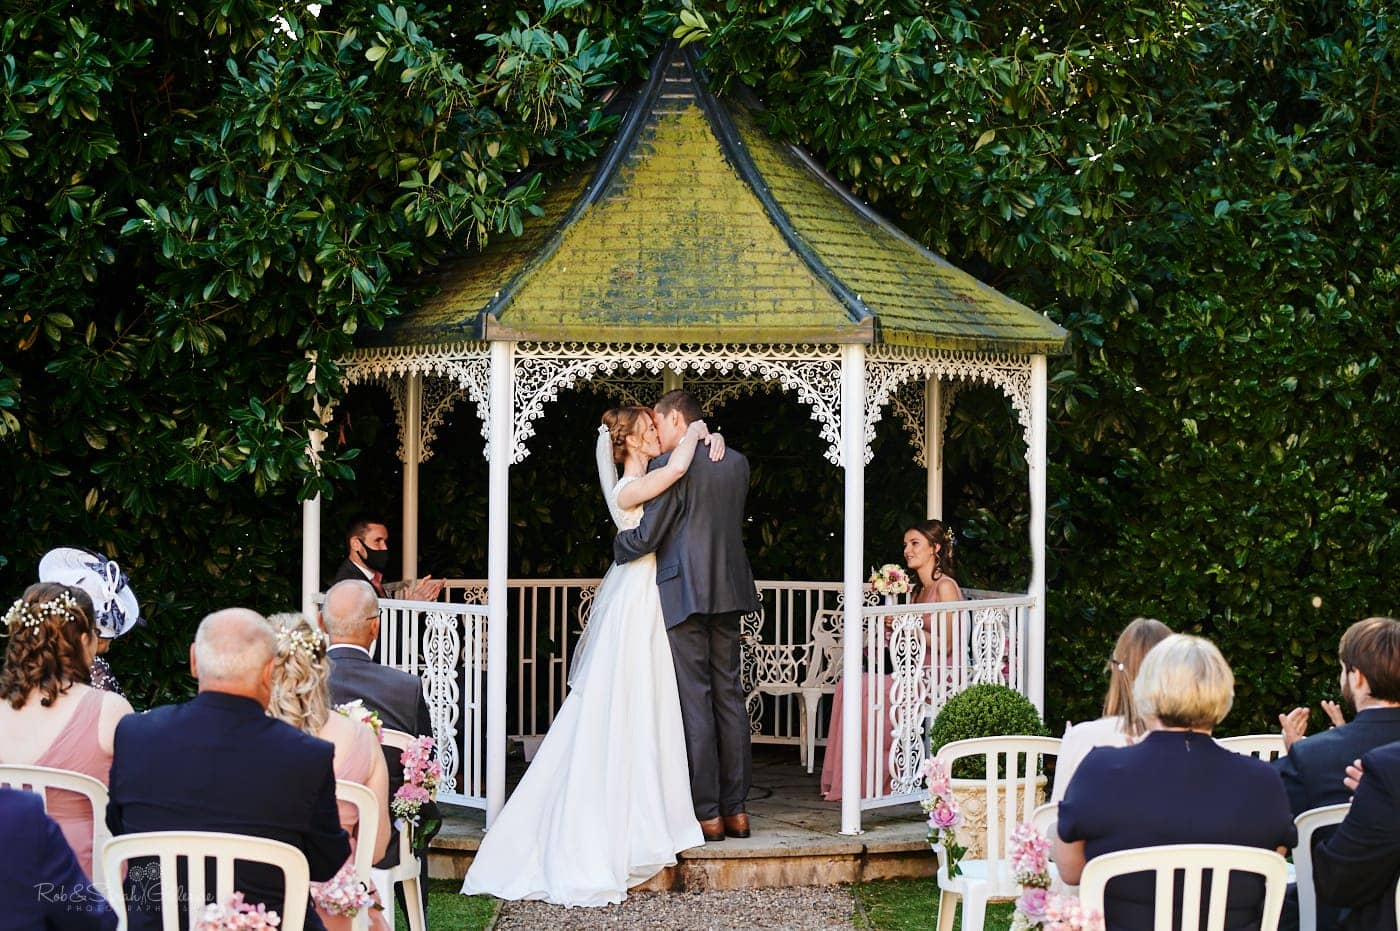 Bride and groom kiss during outdoor wedding